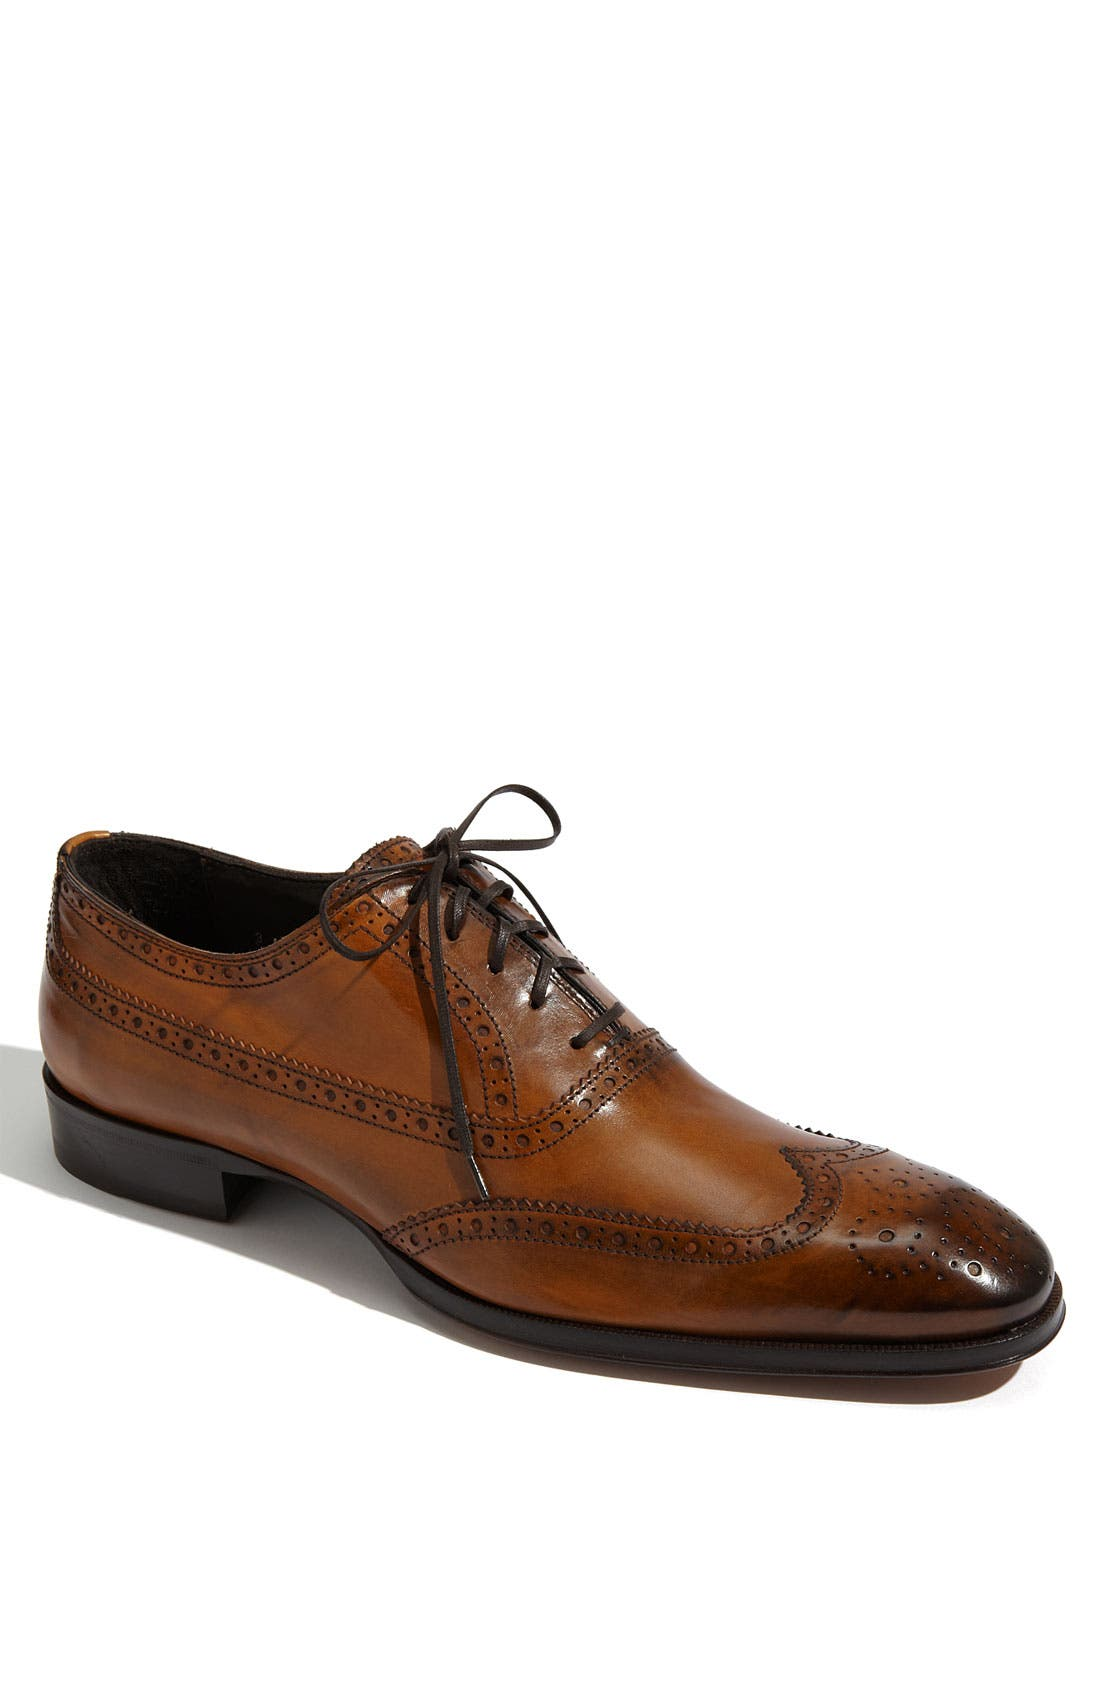 Alternate Image 1 Selected - To Boot New York 'Windsor' Wingtip Oxford (Men)